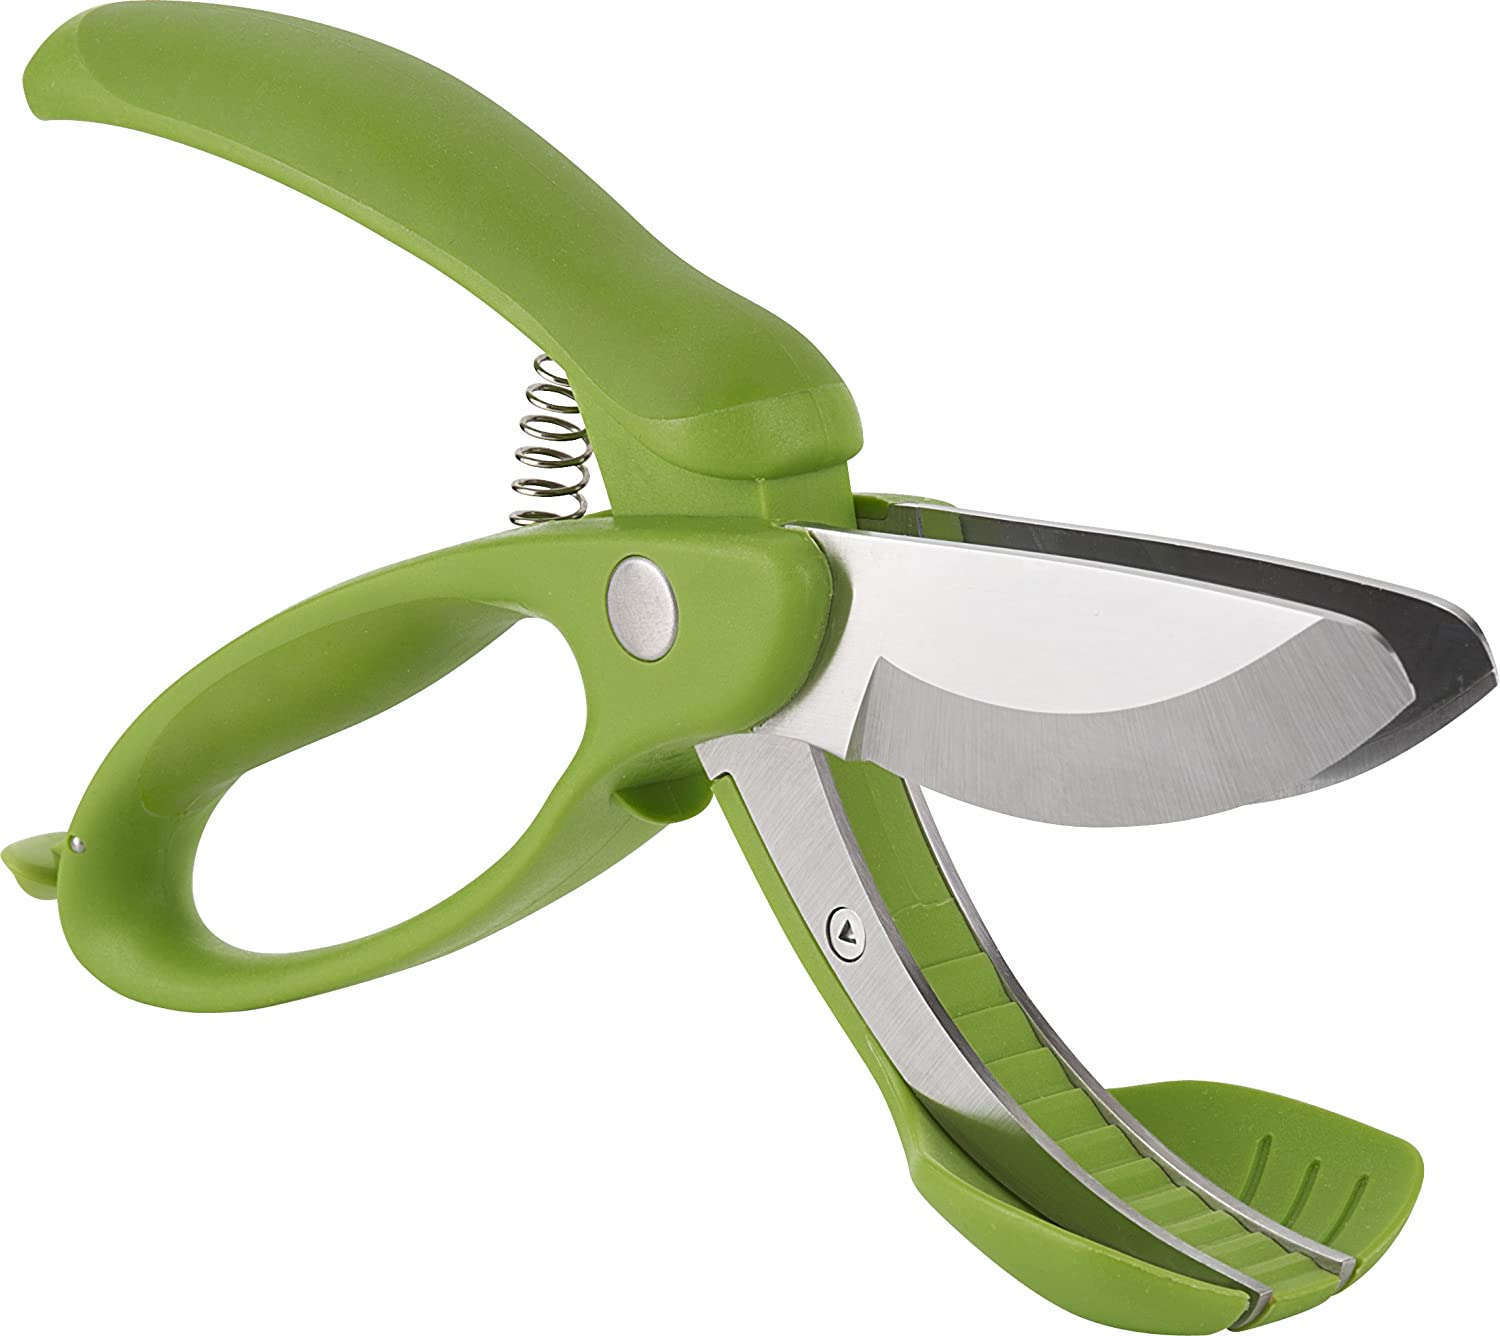 Trudeau 09610135 Toss and Chop Salad Tongs